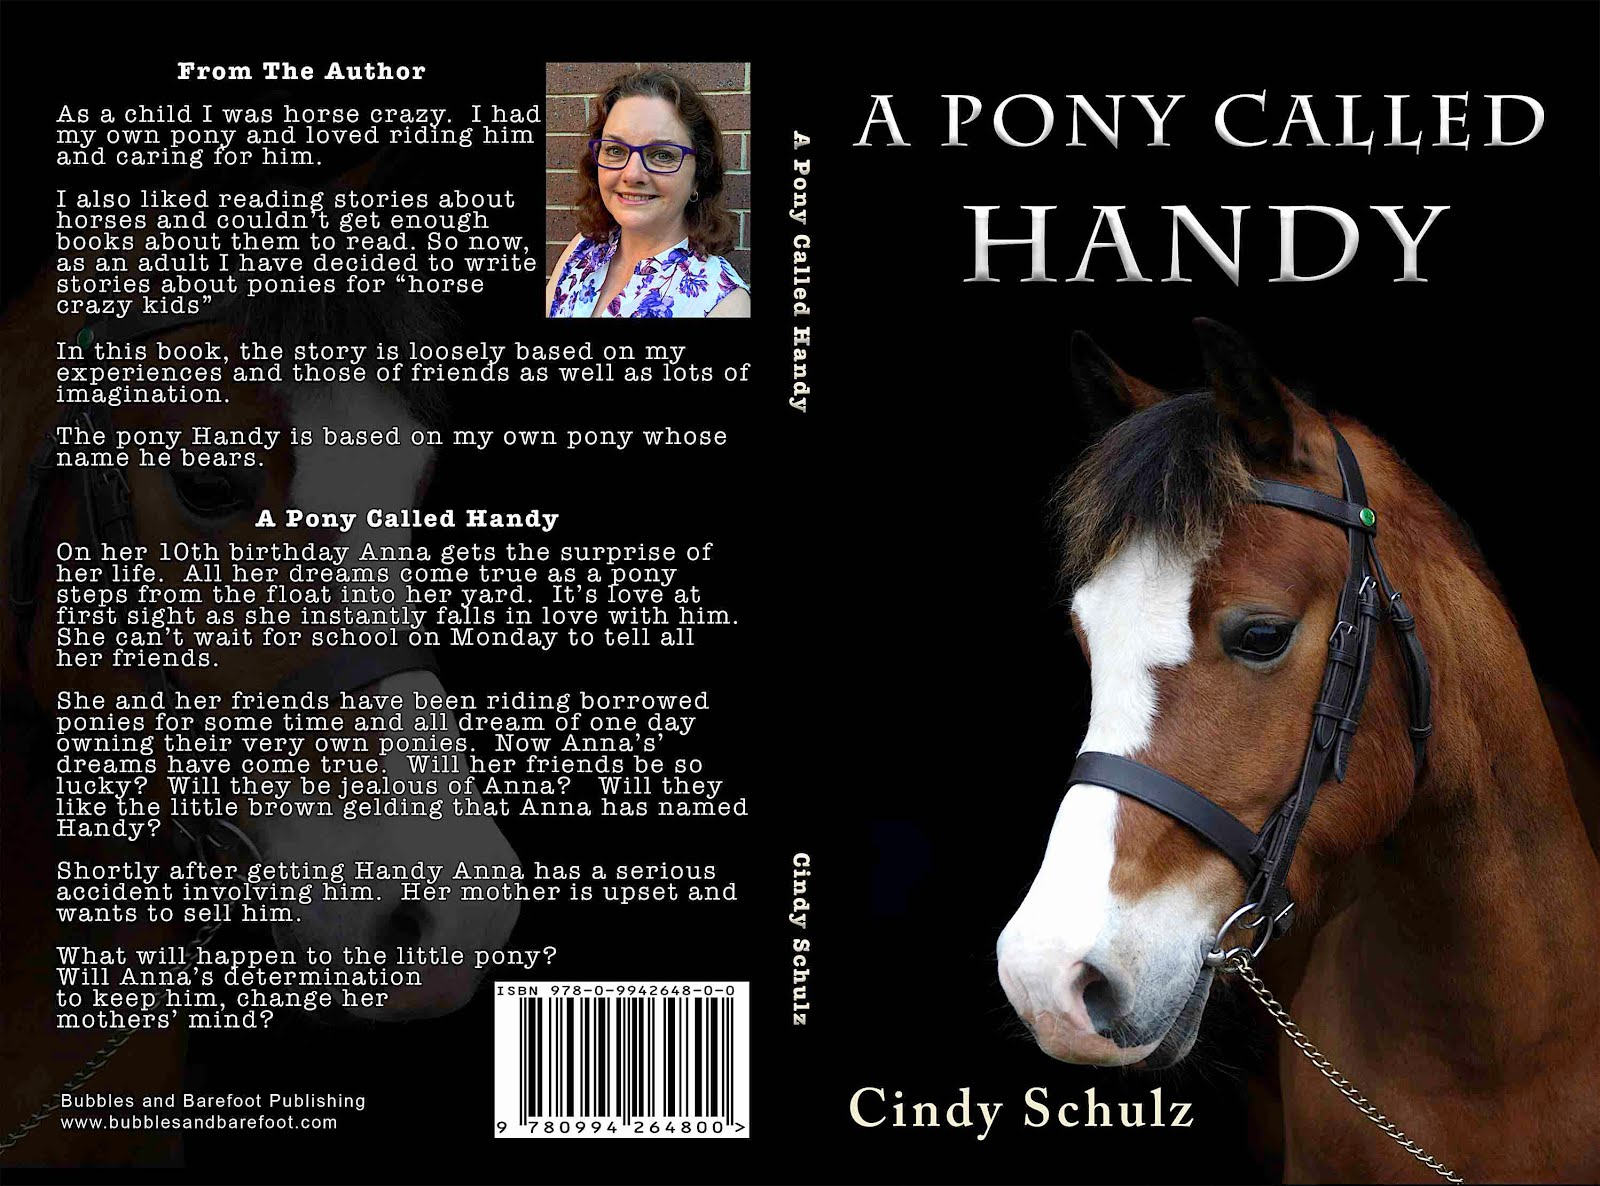 A Pony Called Handy